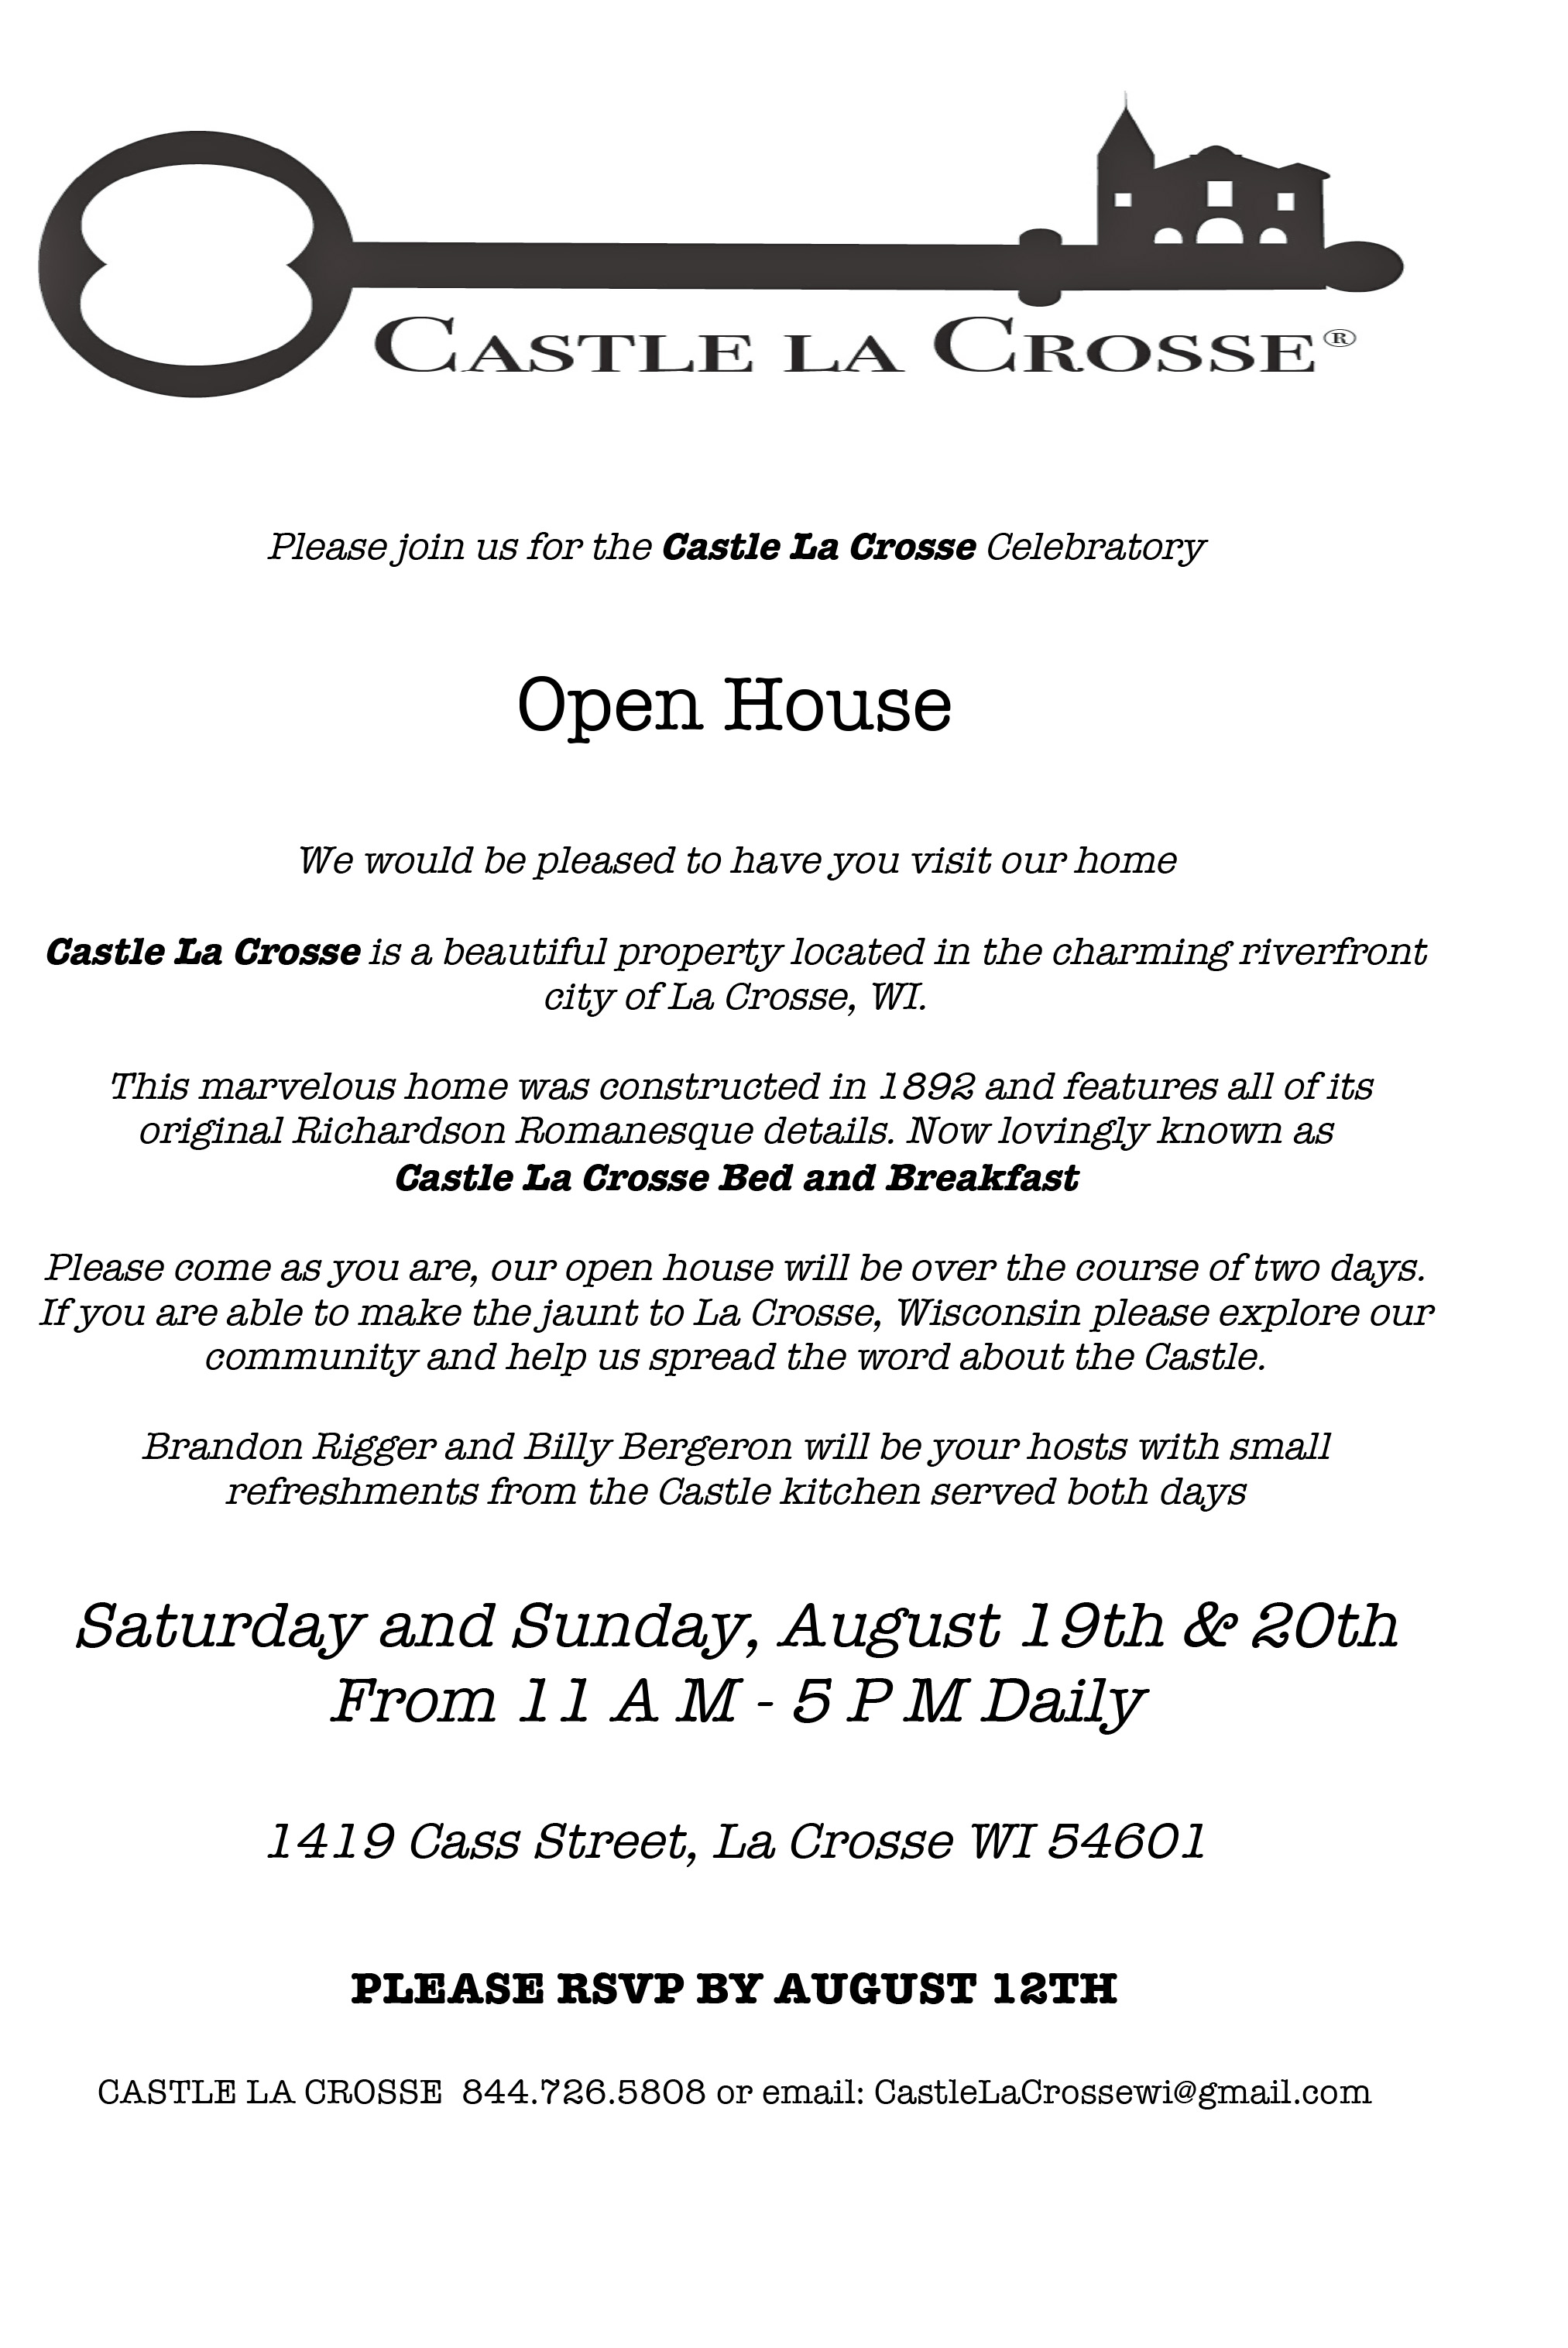 Microsoft Word - CLC Open House Invite.docx